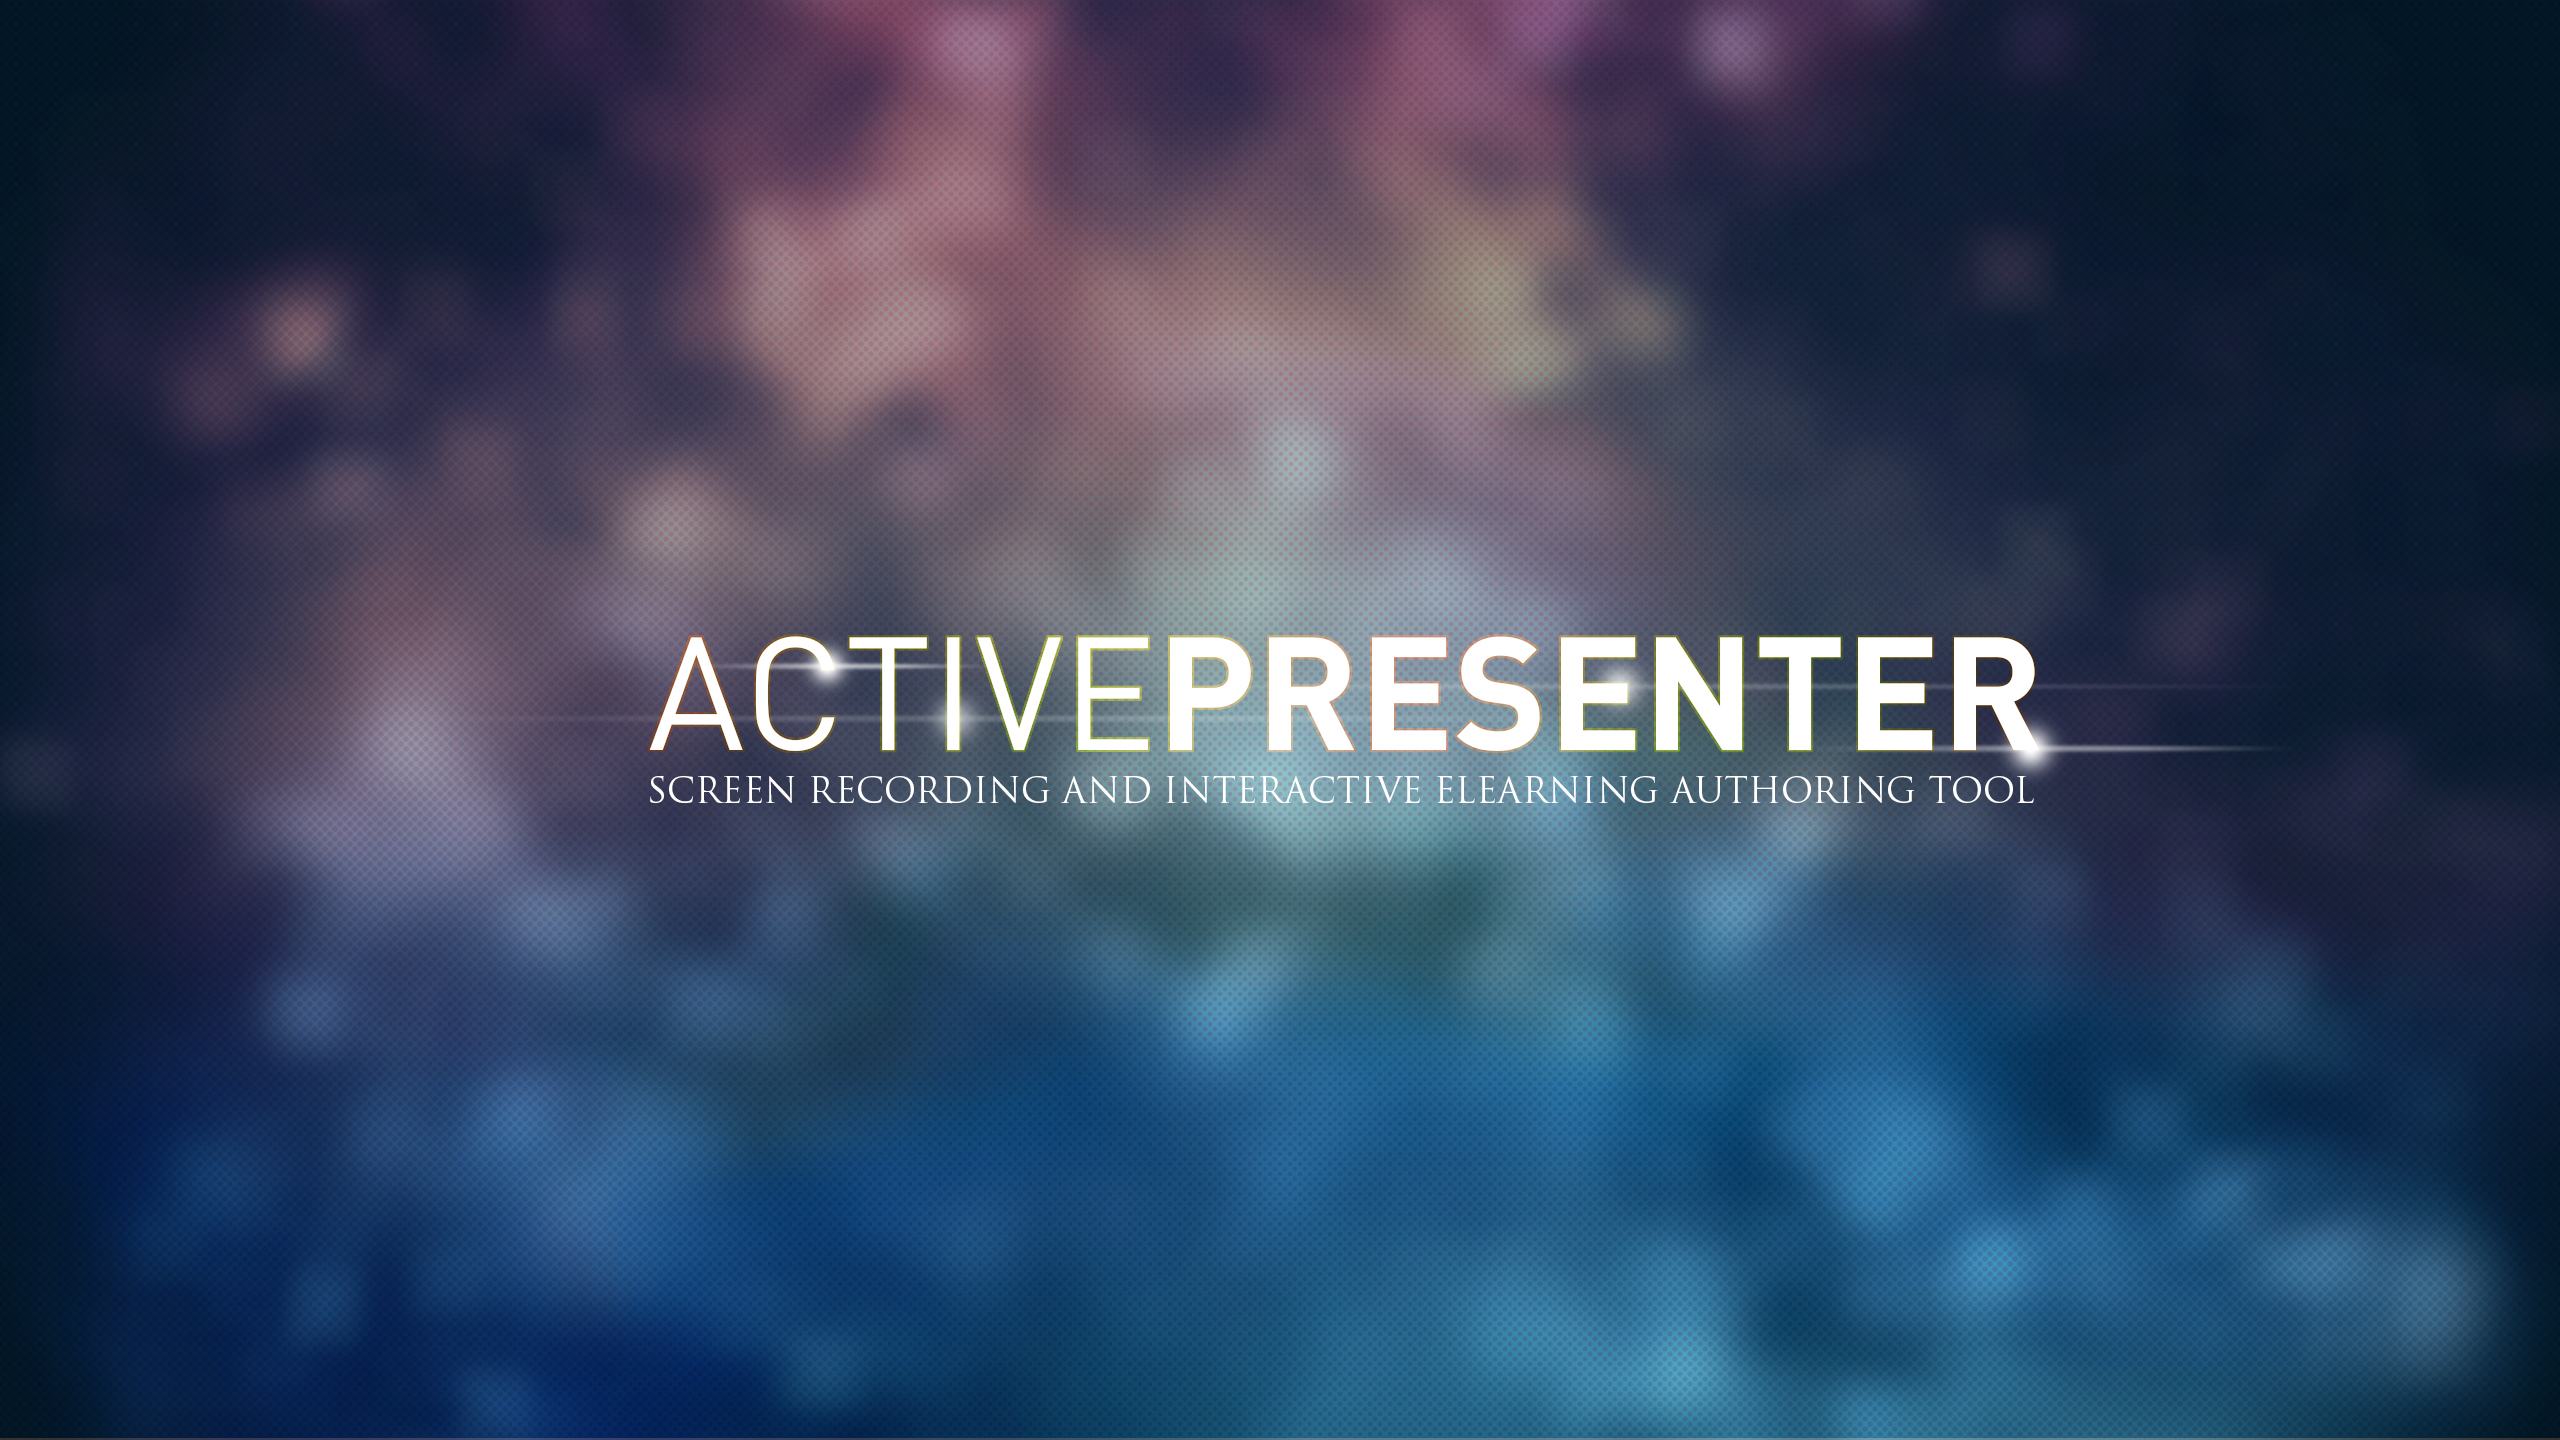 Now, you've had a handy software to create an amazing eLearning course content: ActivePresenter.